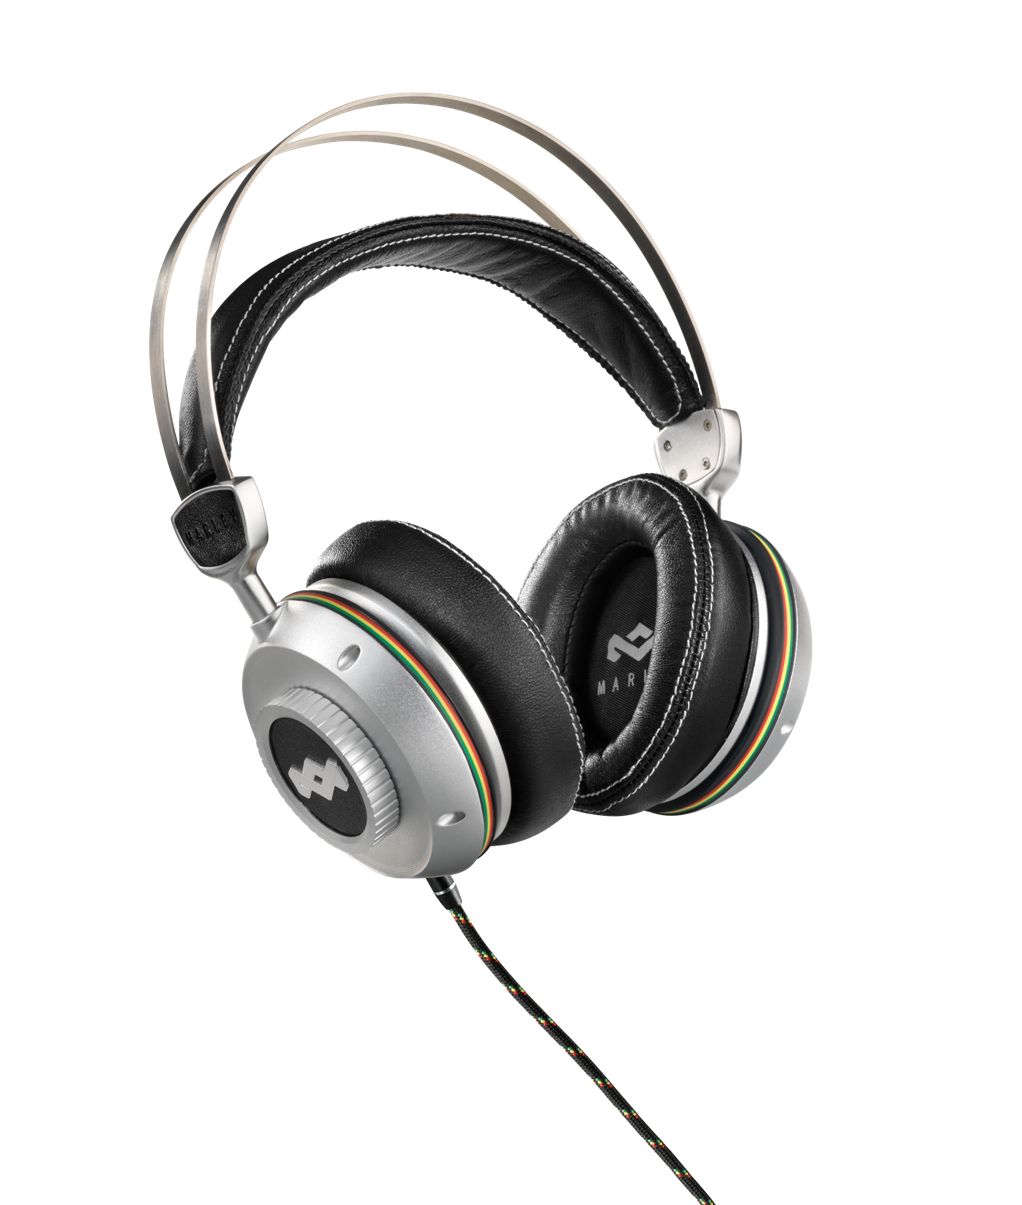 House of Marley TTR Destiny OE review - Engadget